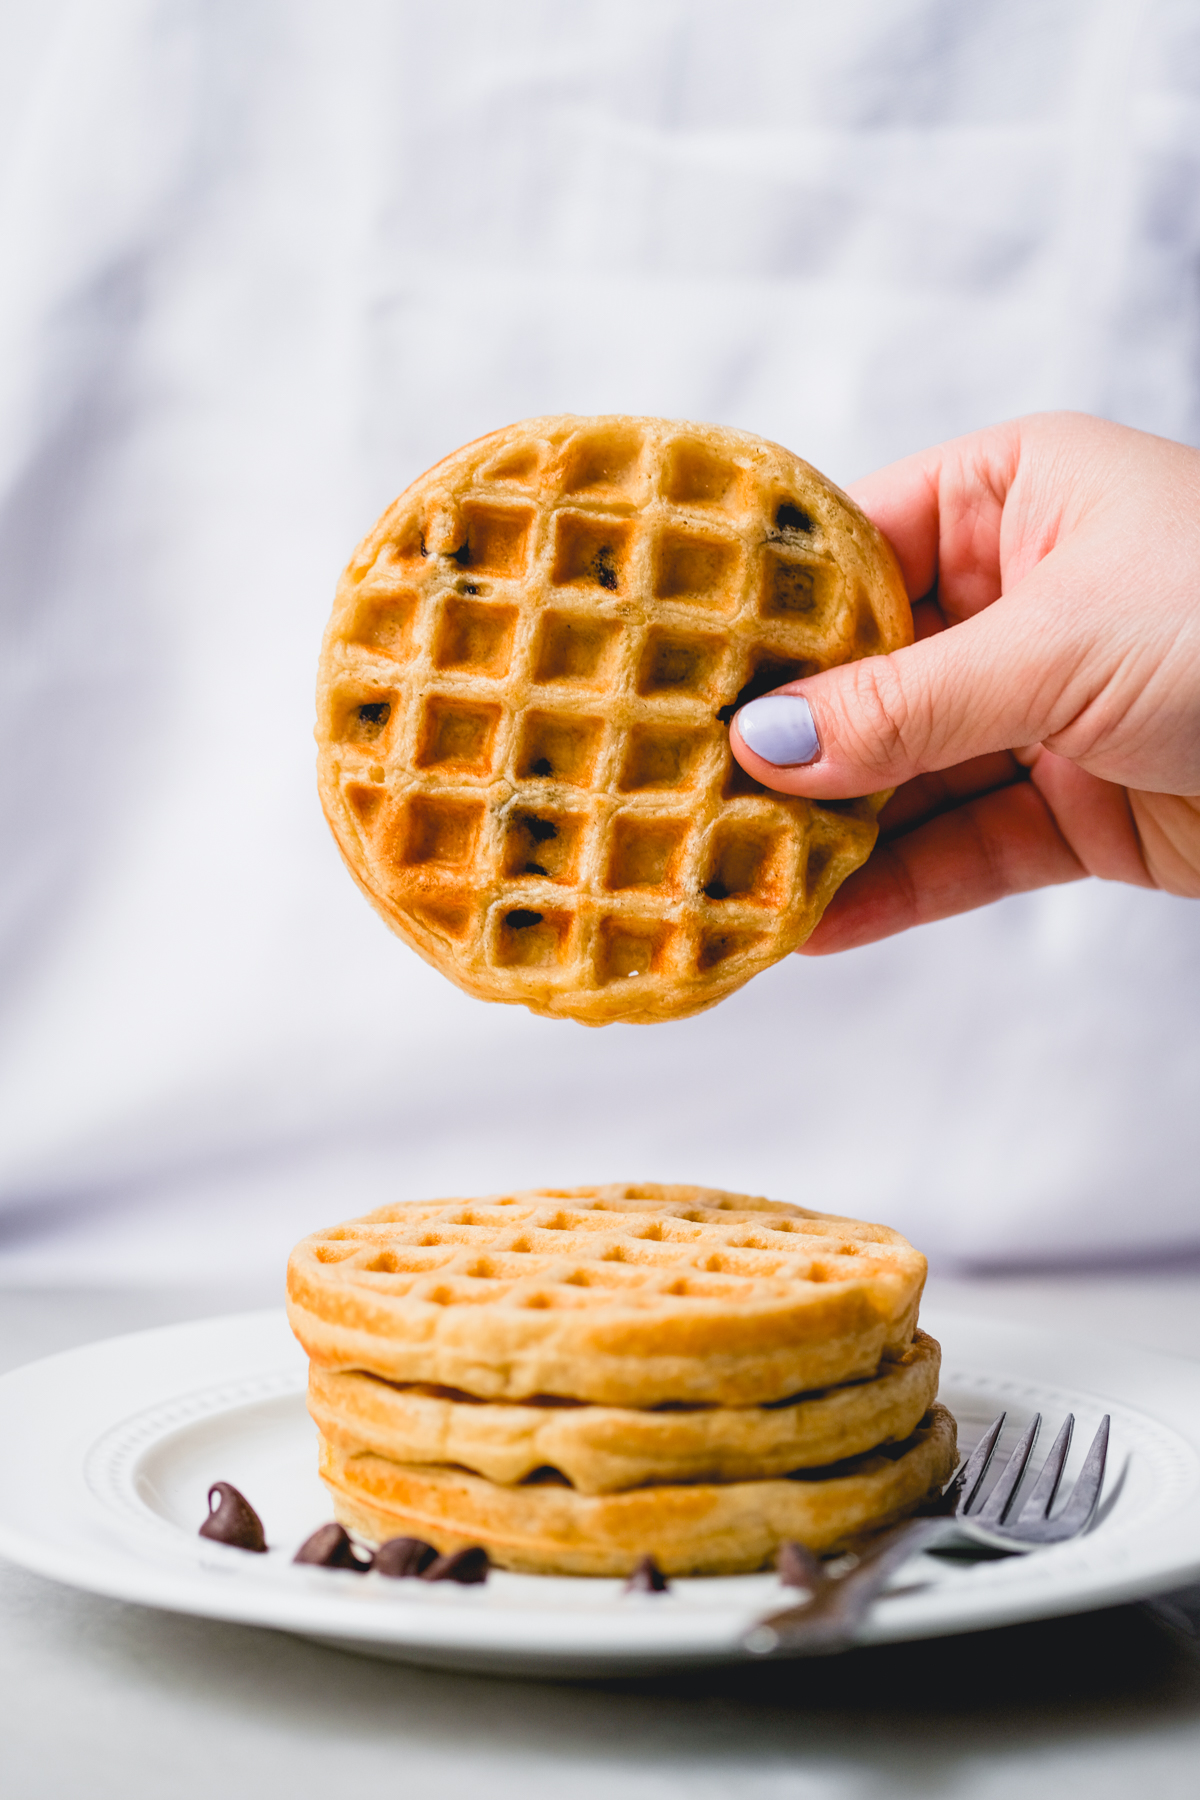 holding a mini chocolate chip oat waffle above a stack on a plate